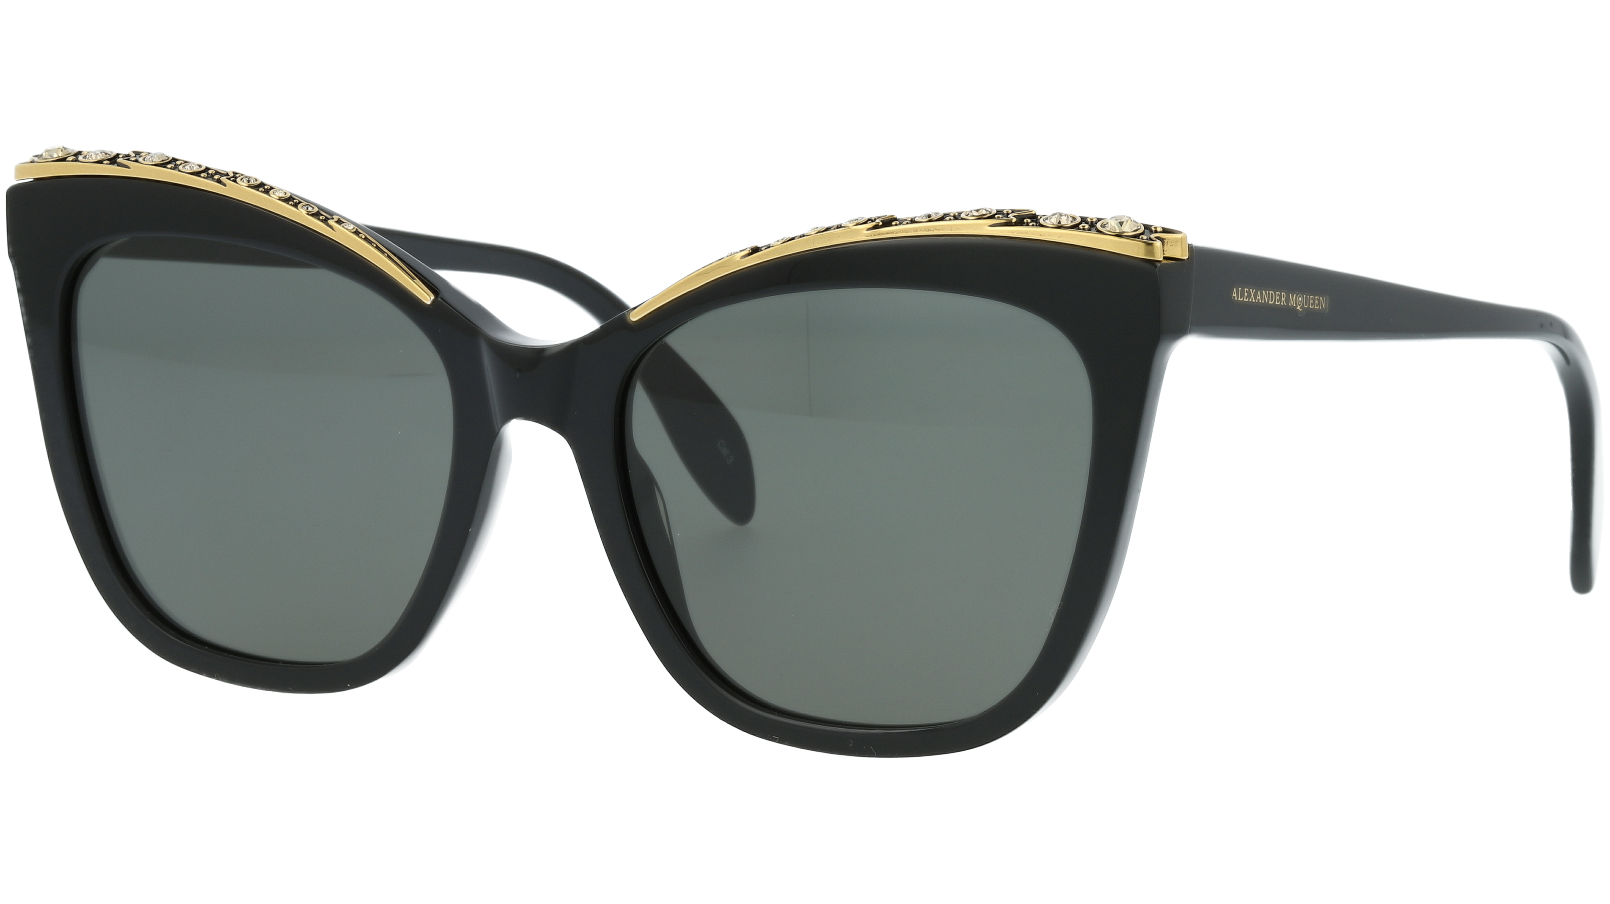 ALEXANDER MCQUEEN AM0182S 001 55 BLACK Sunglasses